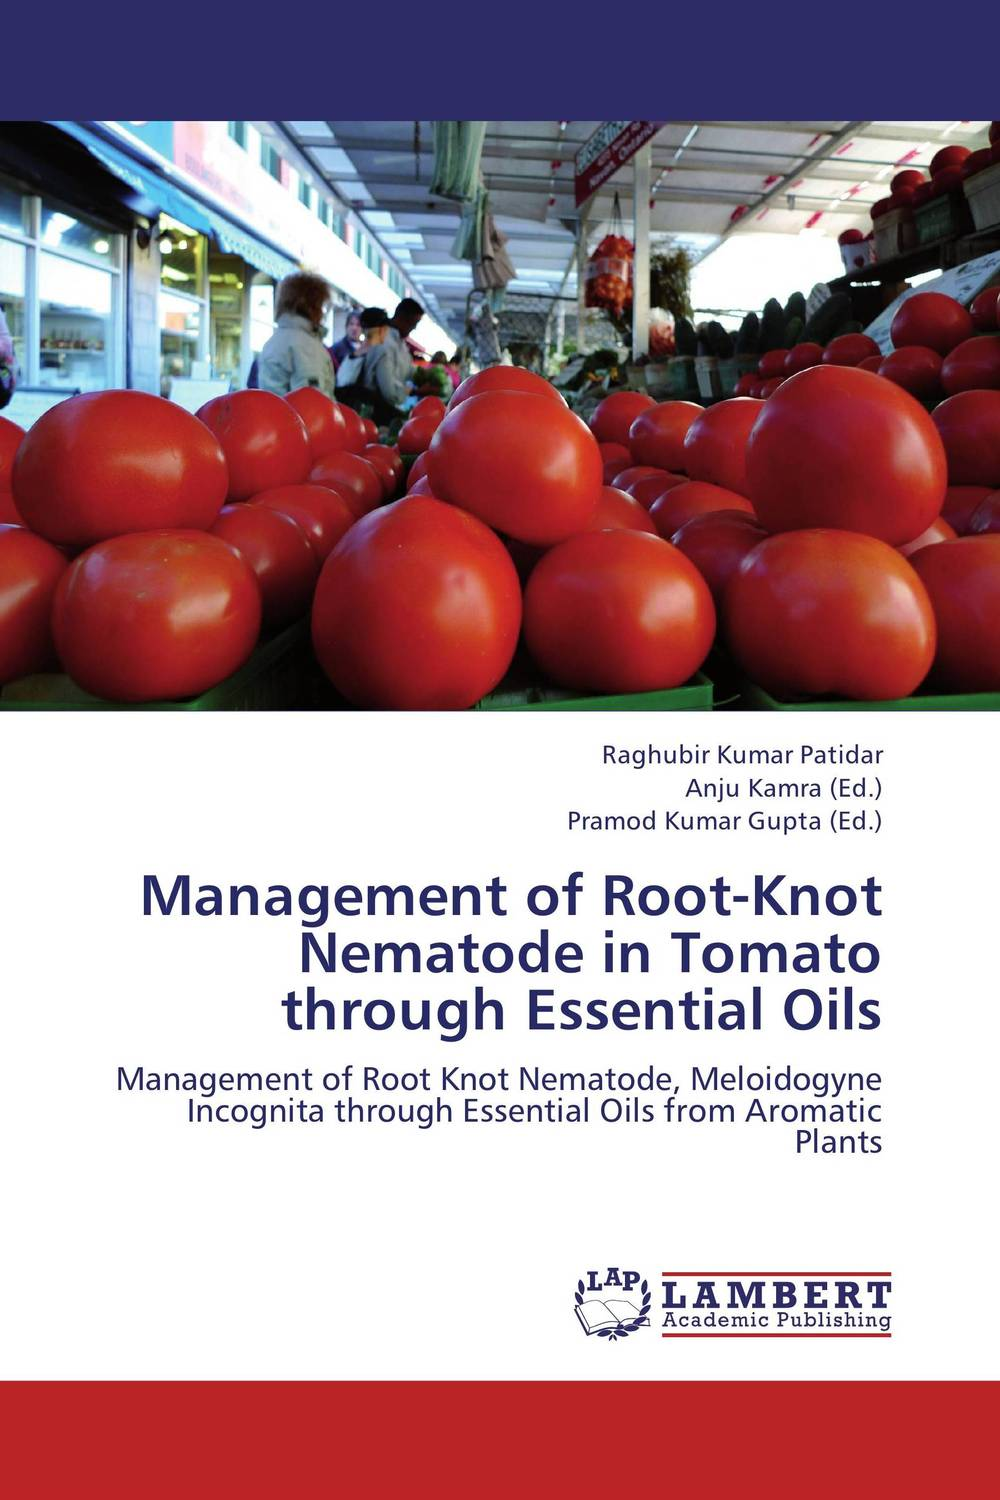 Management of Root-Knot Nematode in Tomato through Essential Oils h n gour pankaj sharma and rakesh kaushal pathological aspects and management of root rot of groundnut